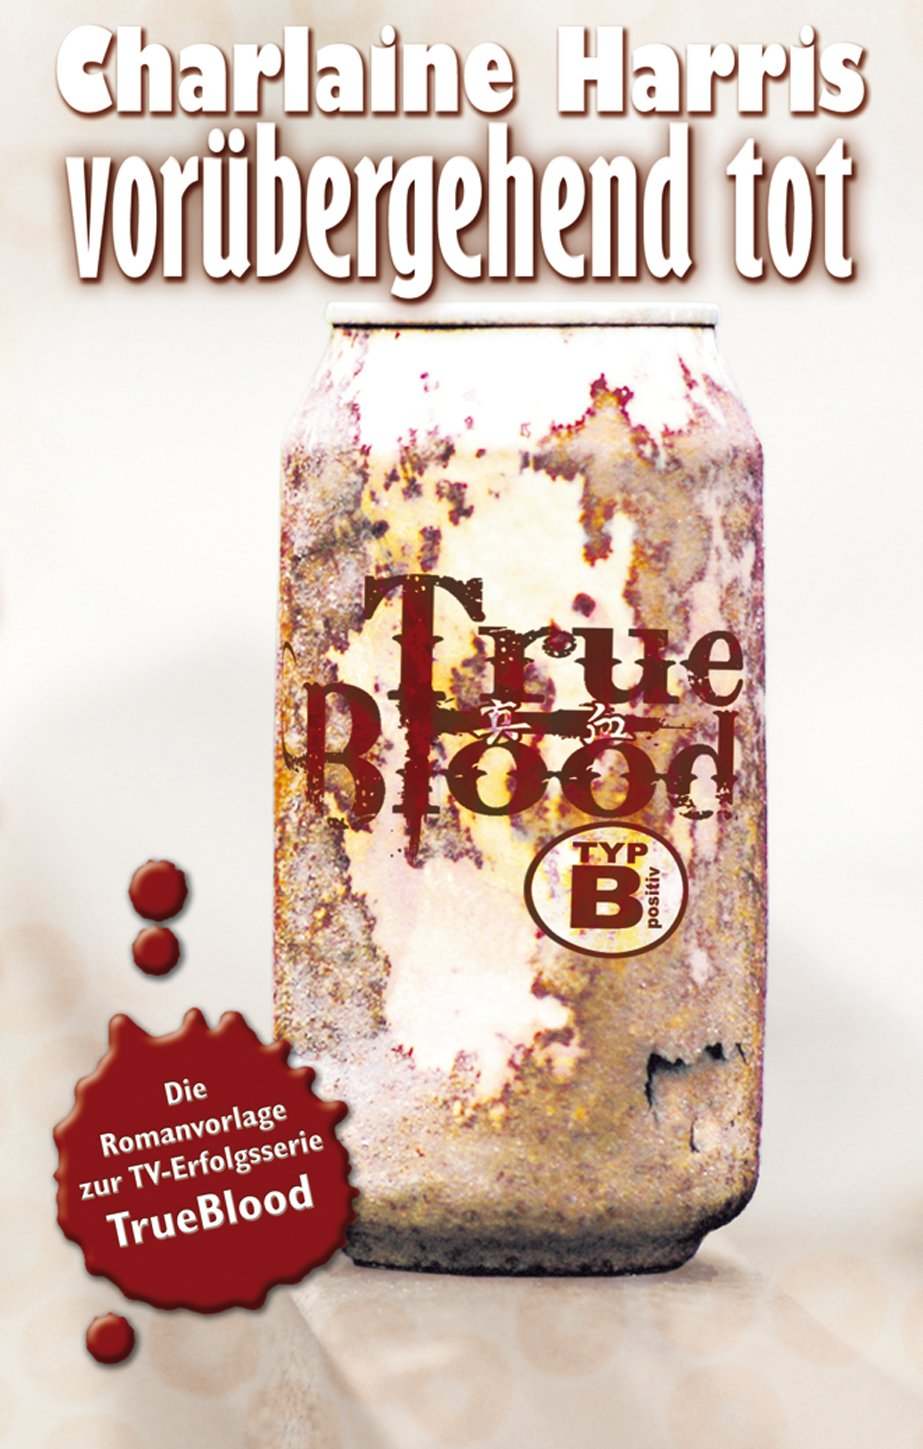 http://www.amazon.de/Vor%C3%BCbergehend-tot-True-Blood-1/dp/3867620555/ref=sr_1_8?ie=UTF8&qid=1414596791&sr=8-8&keywords=sookie+stackhouse+reihe